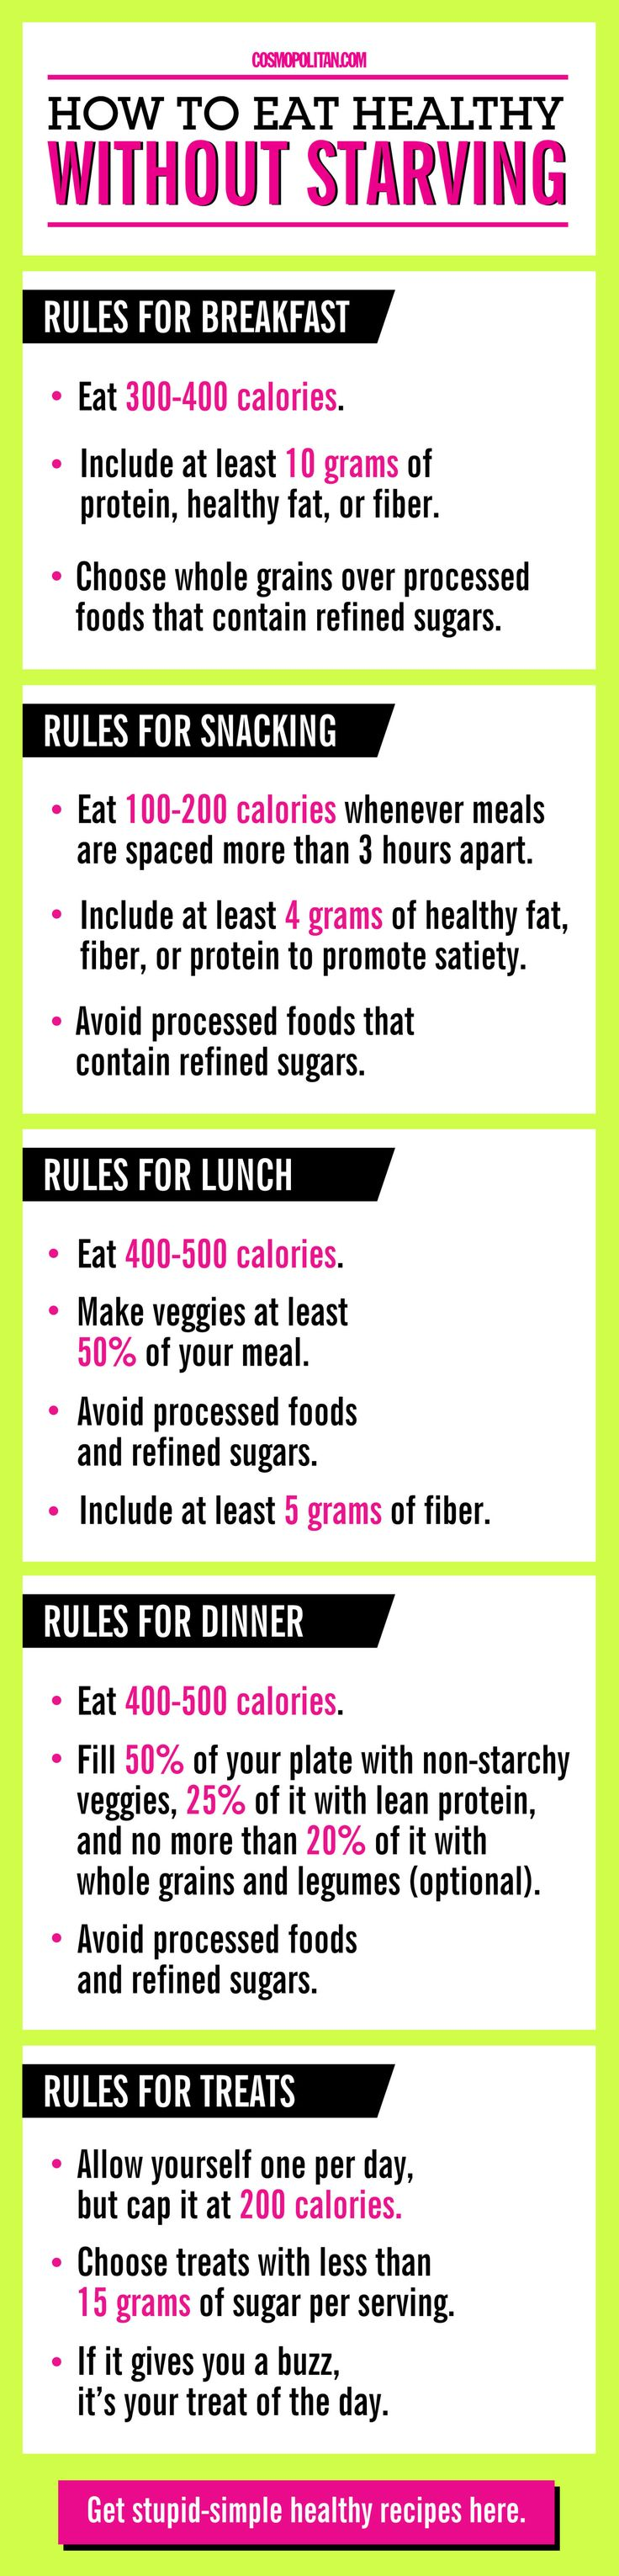 16 Healthy Eating Rules You Should Always Follow  - Cosmopolitan.com